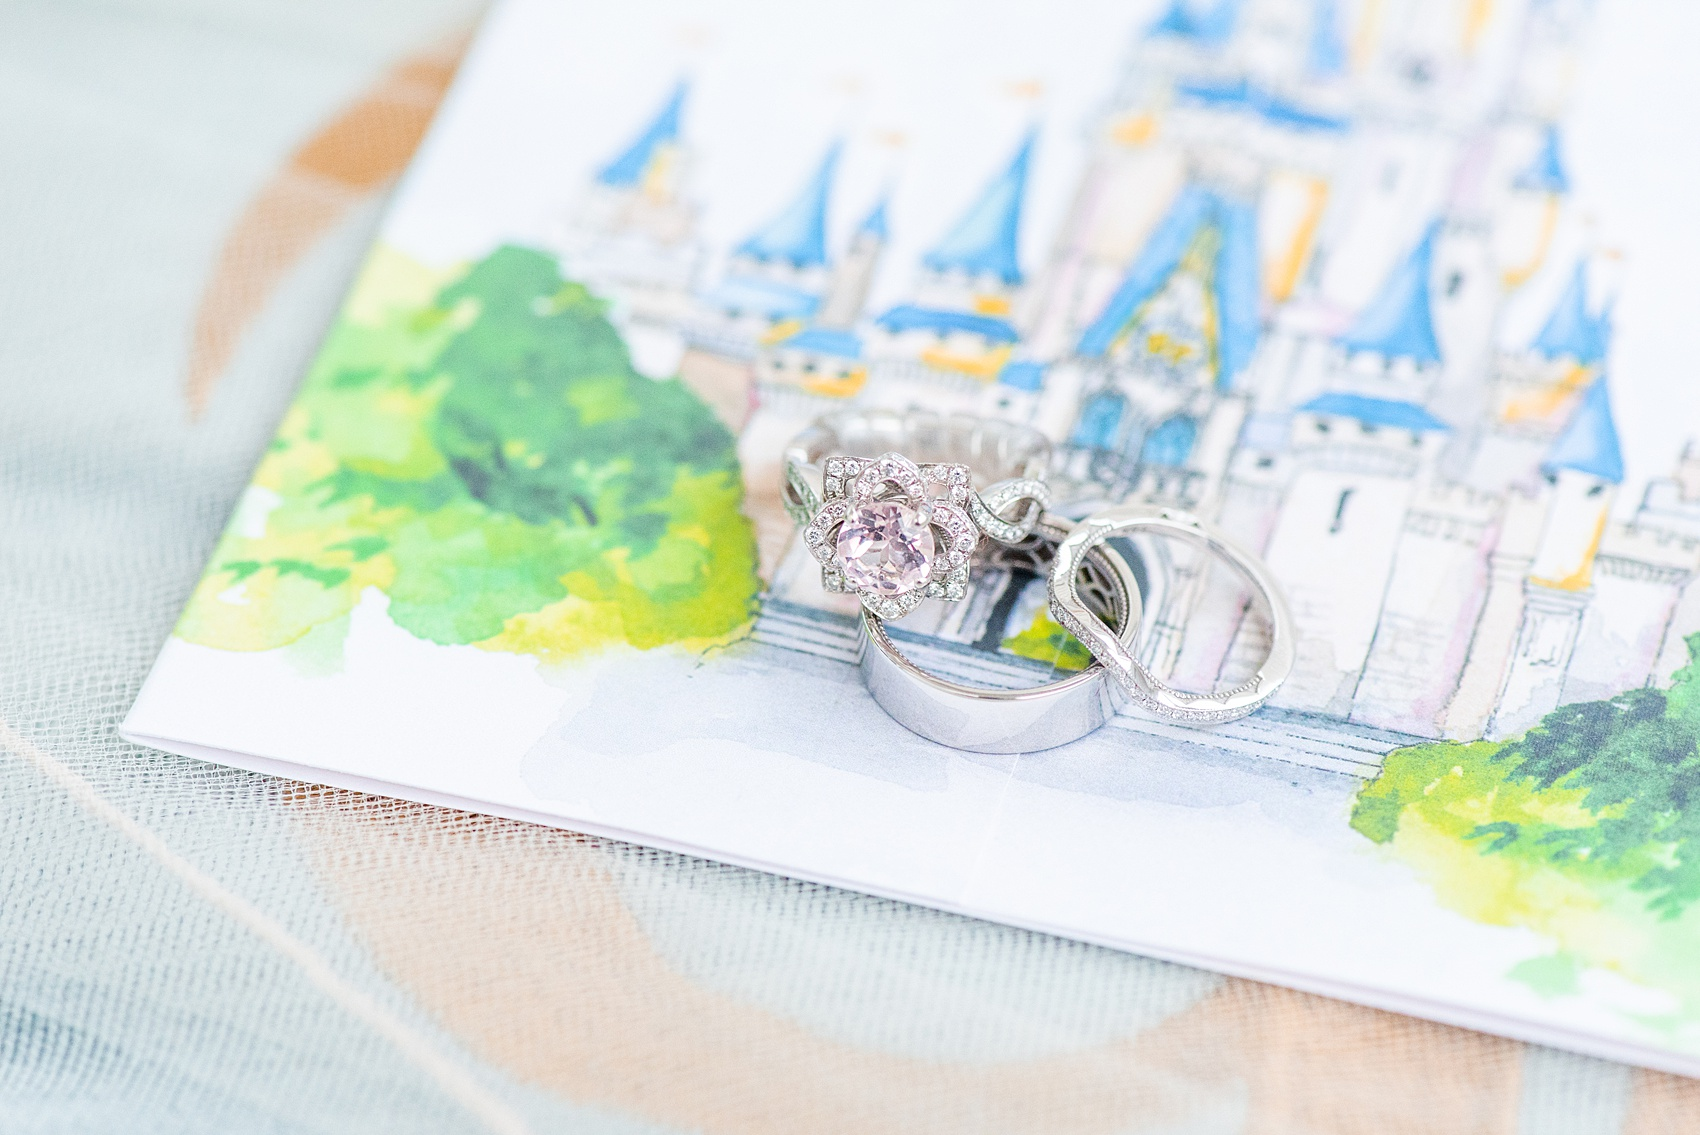 Photographs of a Walt Disney World wedding by Mikkel Paige Photography. The bride's engagement ring was themed to Beauty and the Beast with a pink morganite center stone. It perfectly matched their invitations with Cinderella Castle as the main watercolor and the movie glass rose dome on the RSVP card. #disneywedding #disneybride #waltdisneyworld #DisneyWorldWedding #morganitering #pinkengagementring #rosering #BeautyandtheBeast